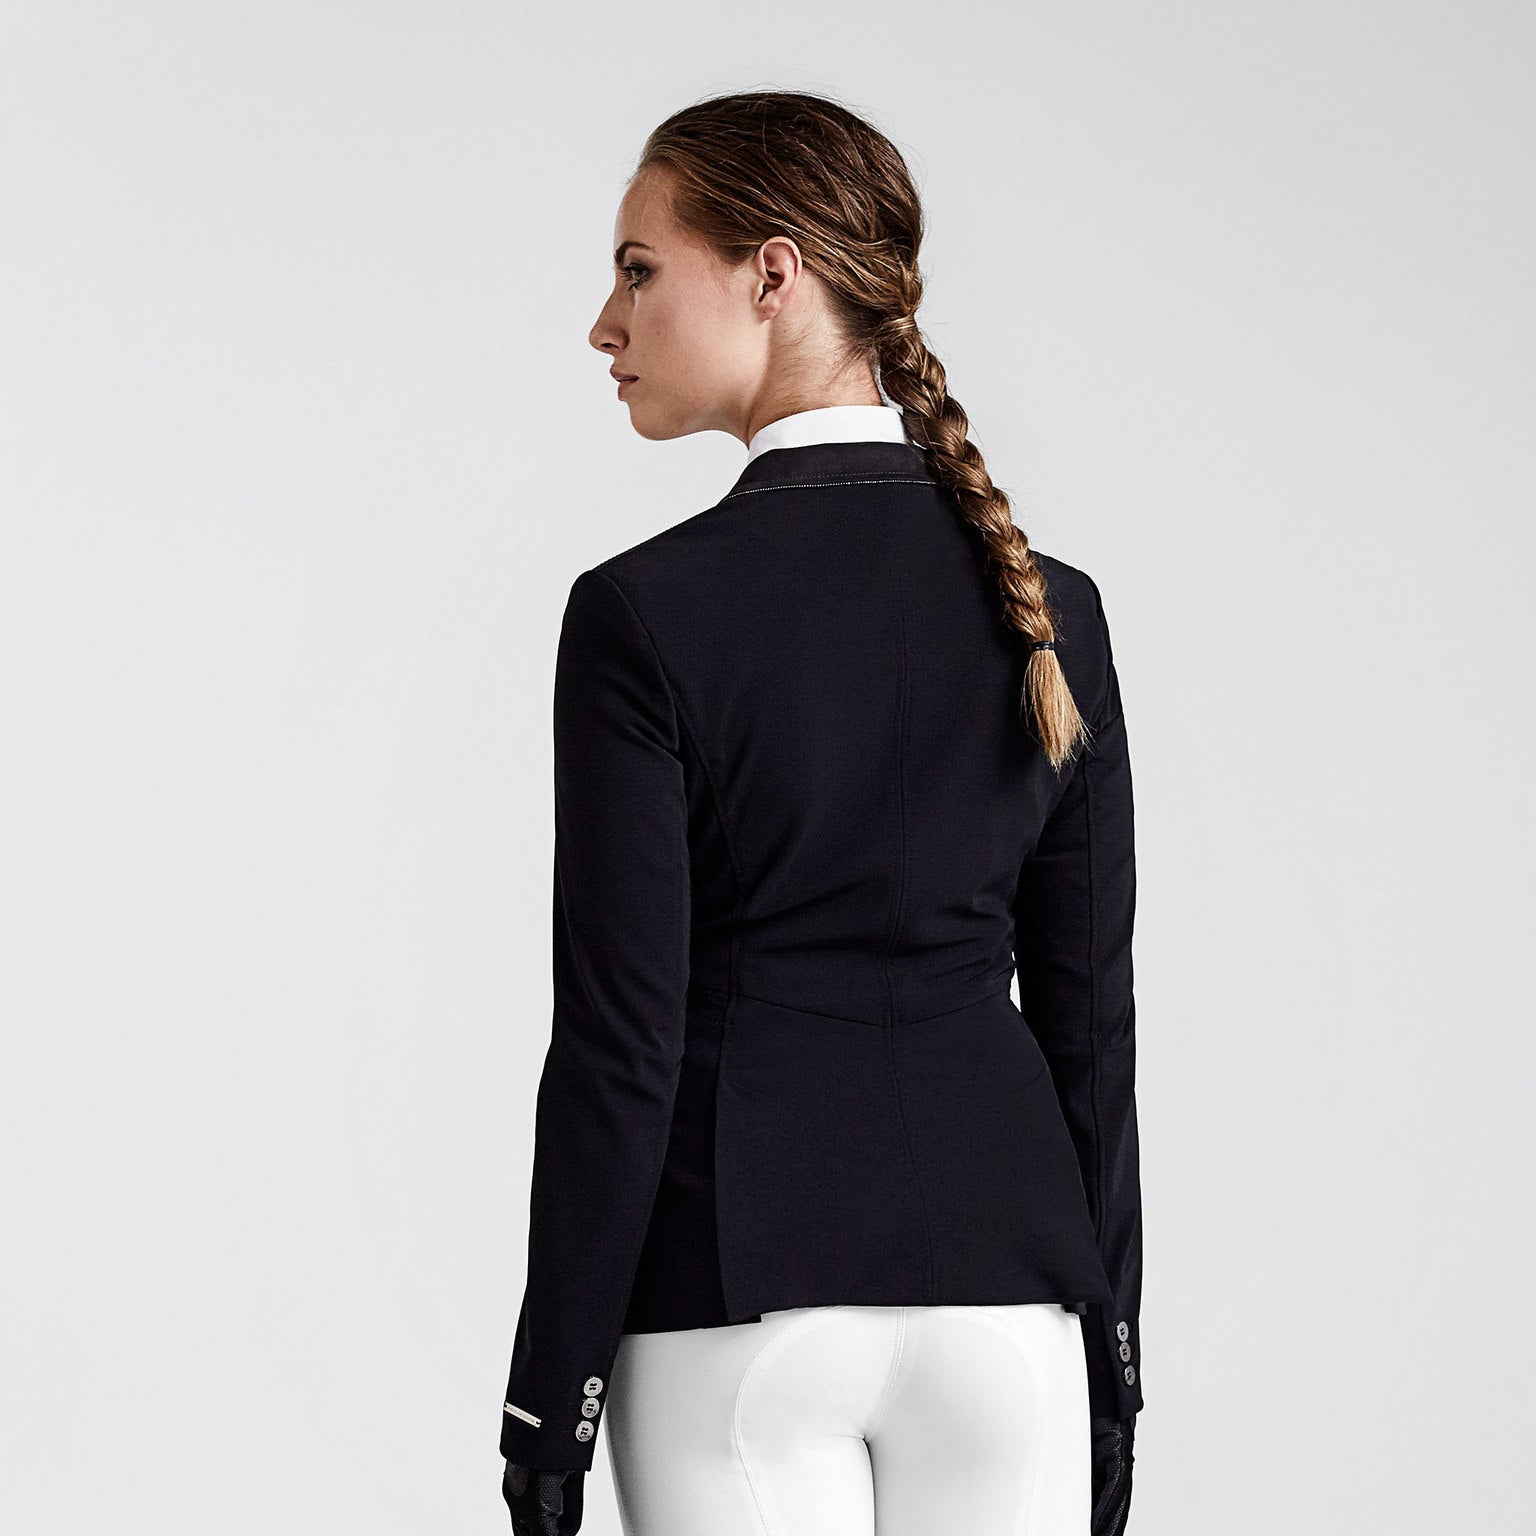 ELVIRA Master Ladies Elegant Show Jacket